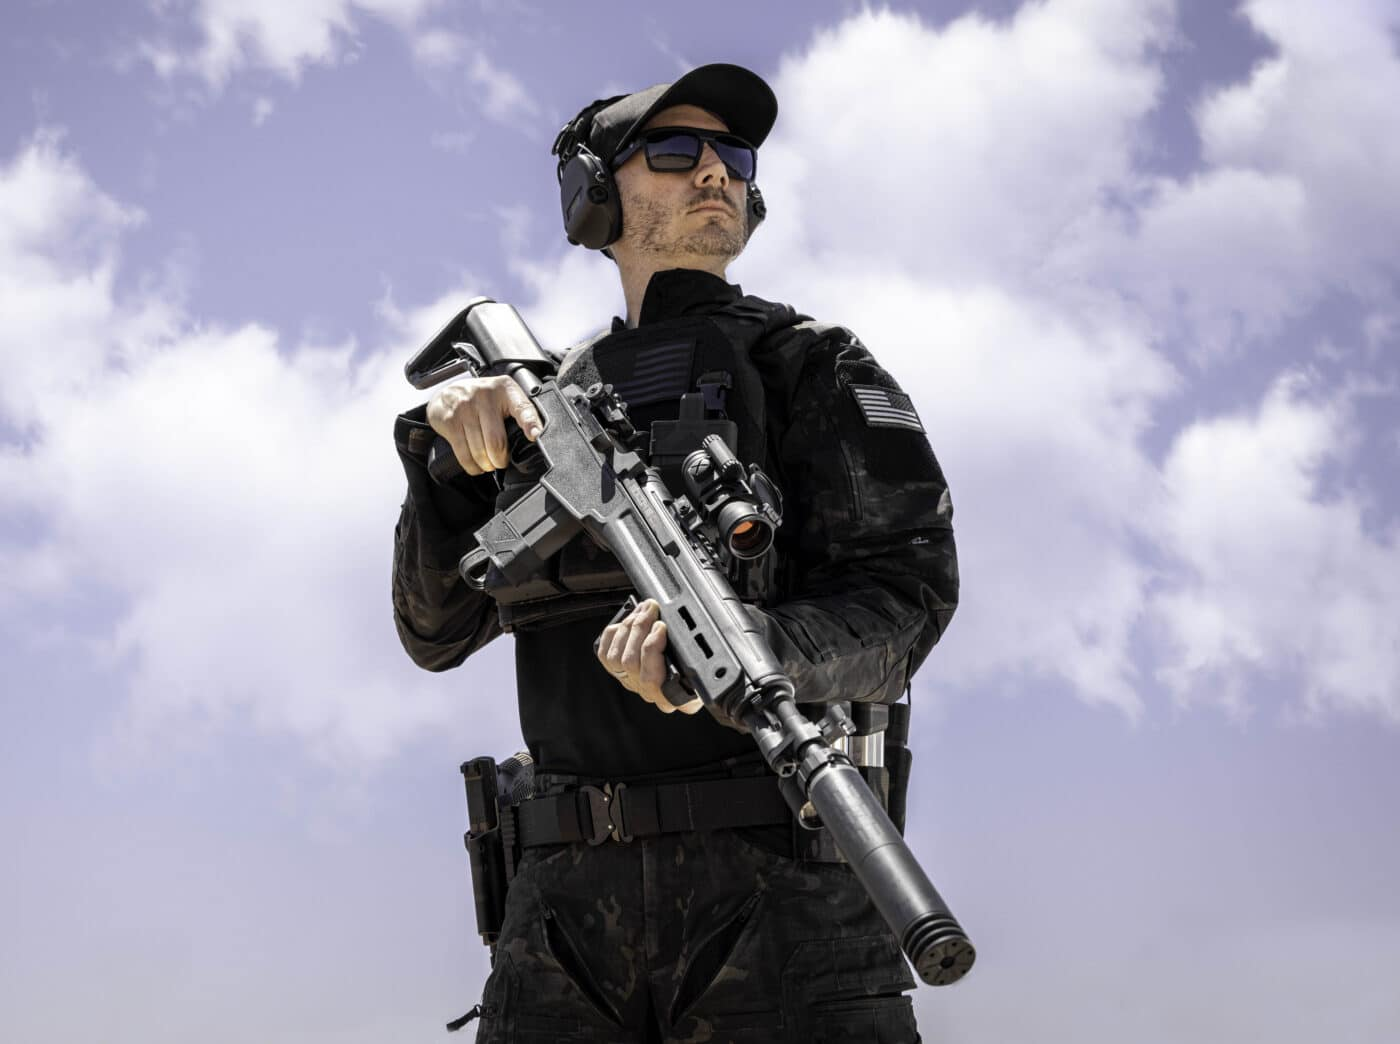 Springfield Armory M1A SOCOM 16 CQB with Silencerco suppressor being held by a man